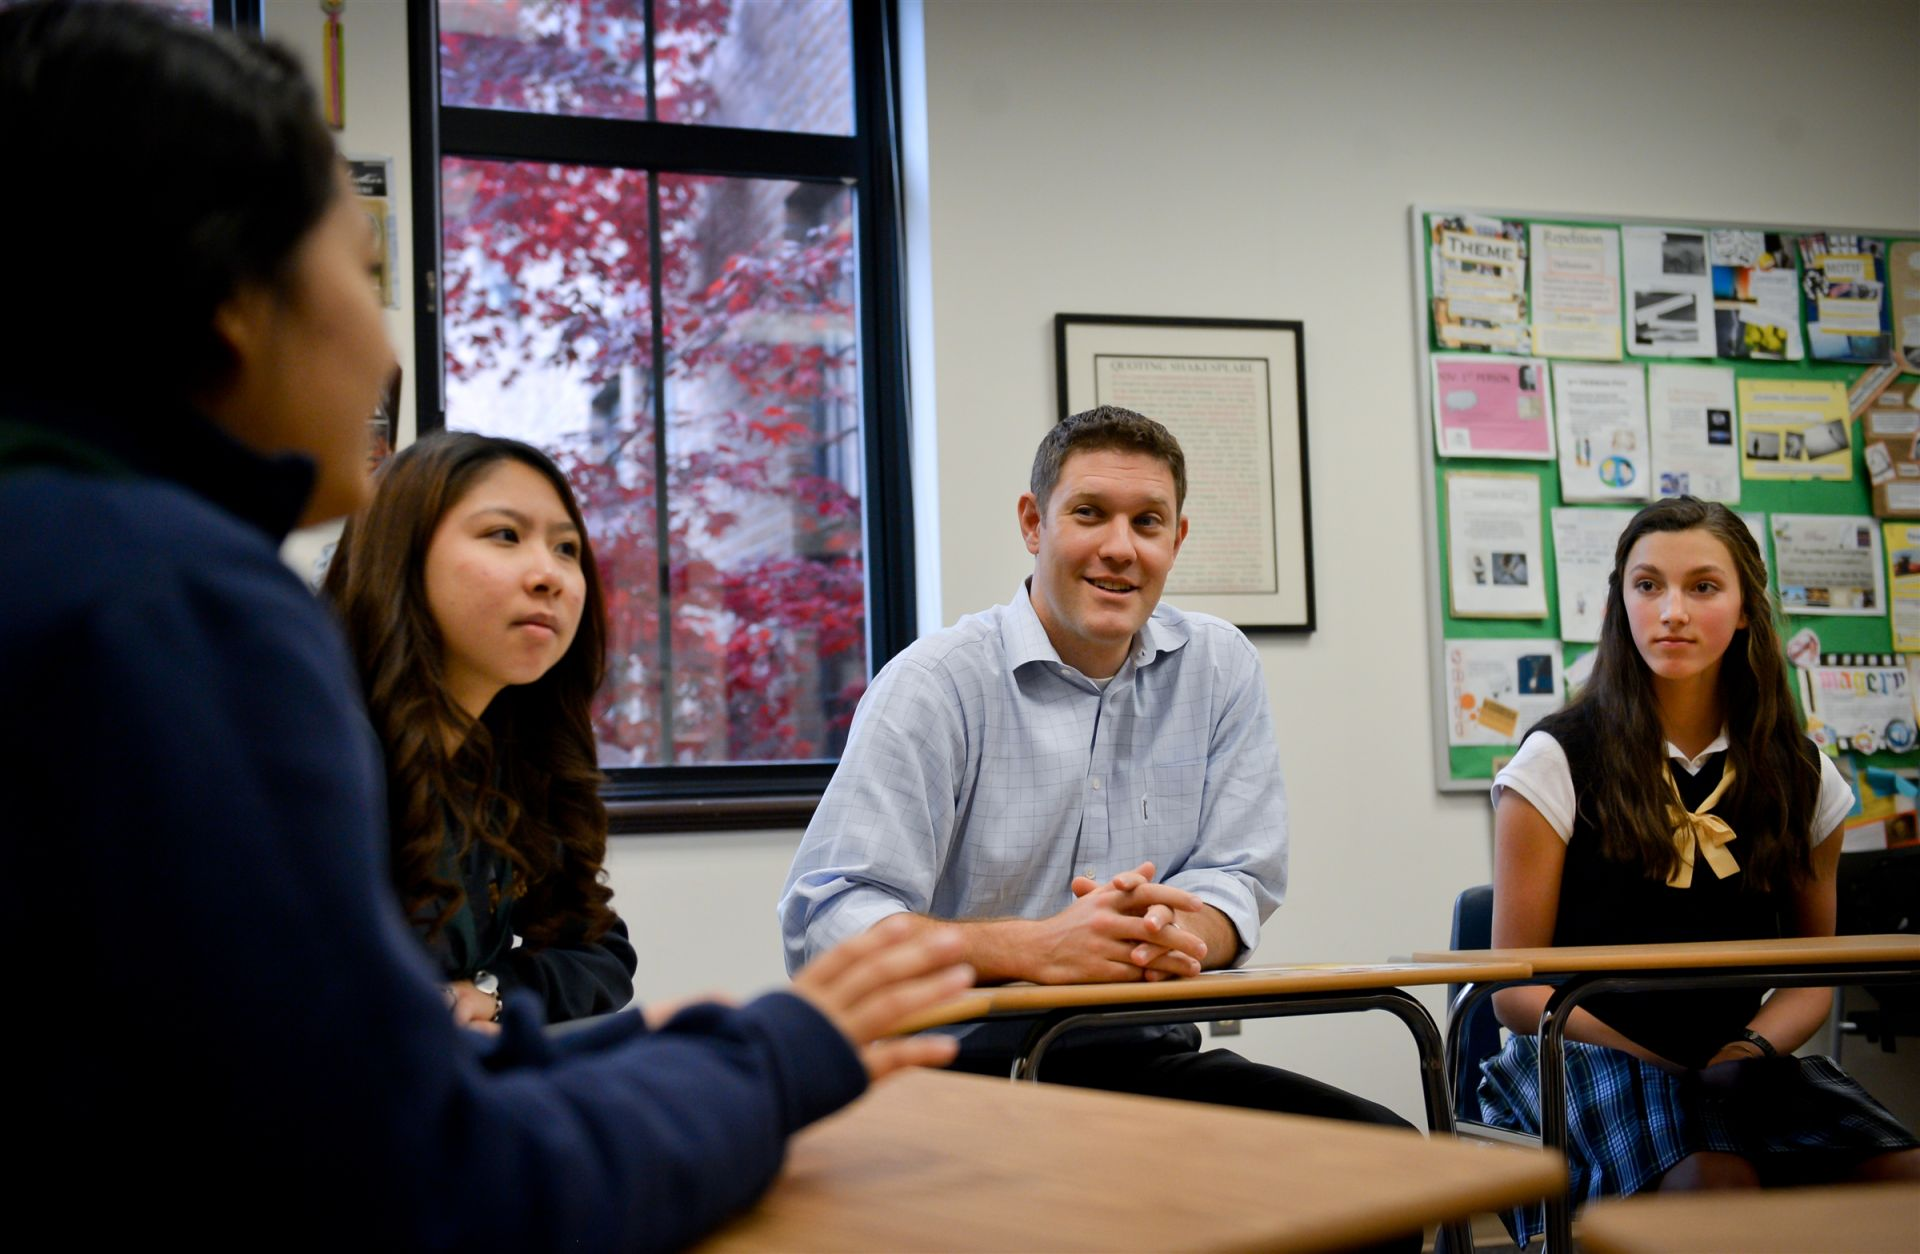 Upper School classrooms offer an environment for discussion and collaboration.